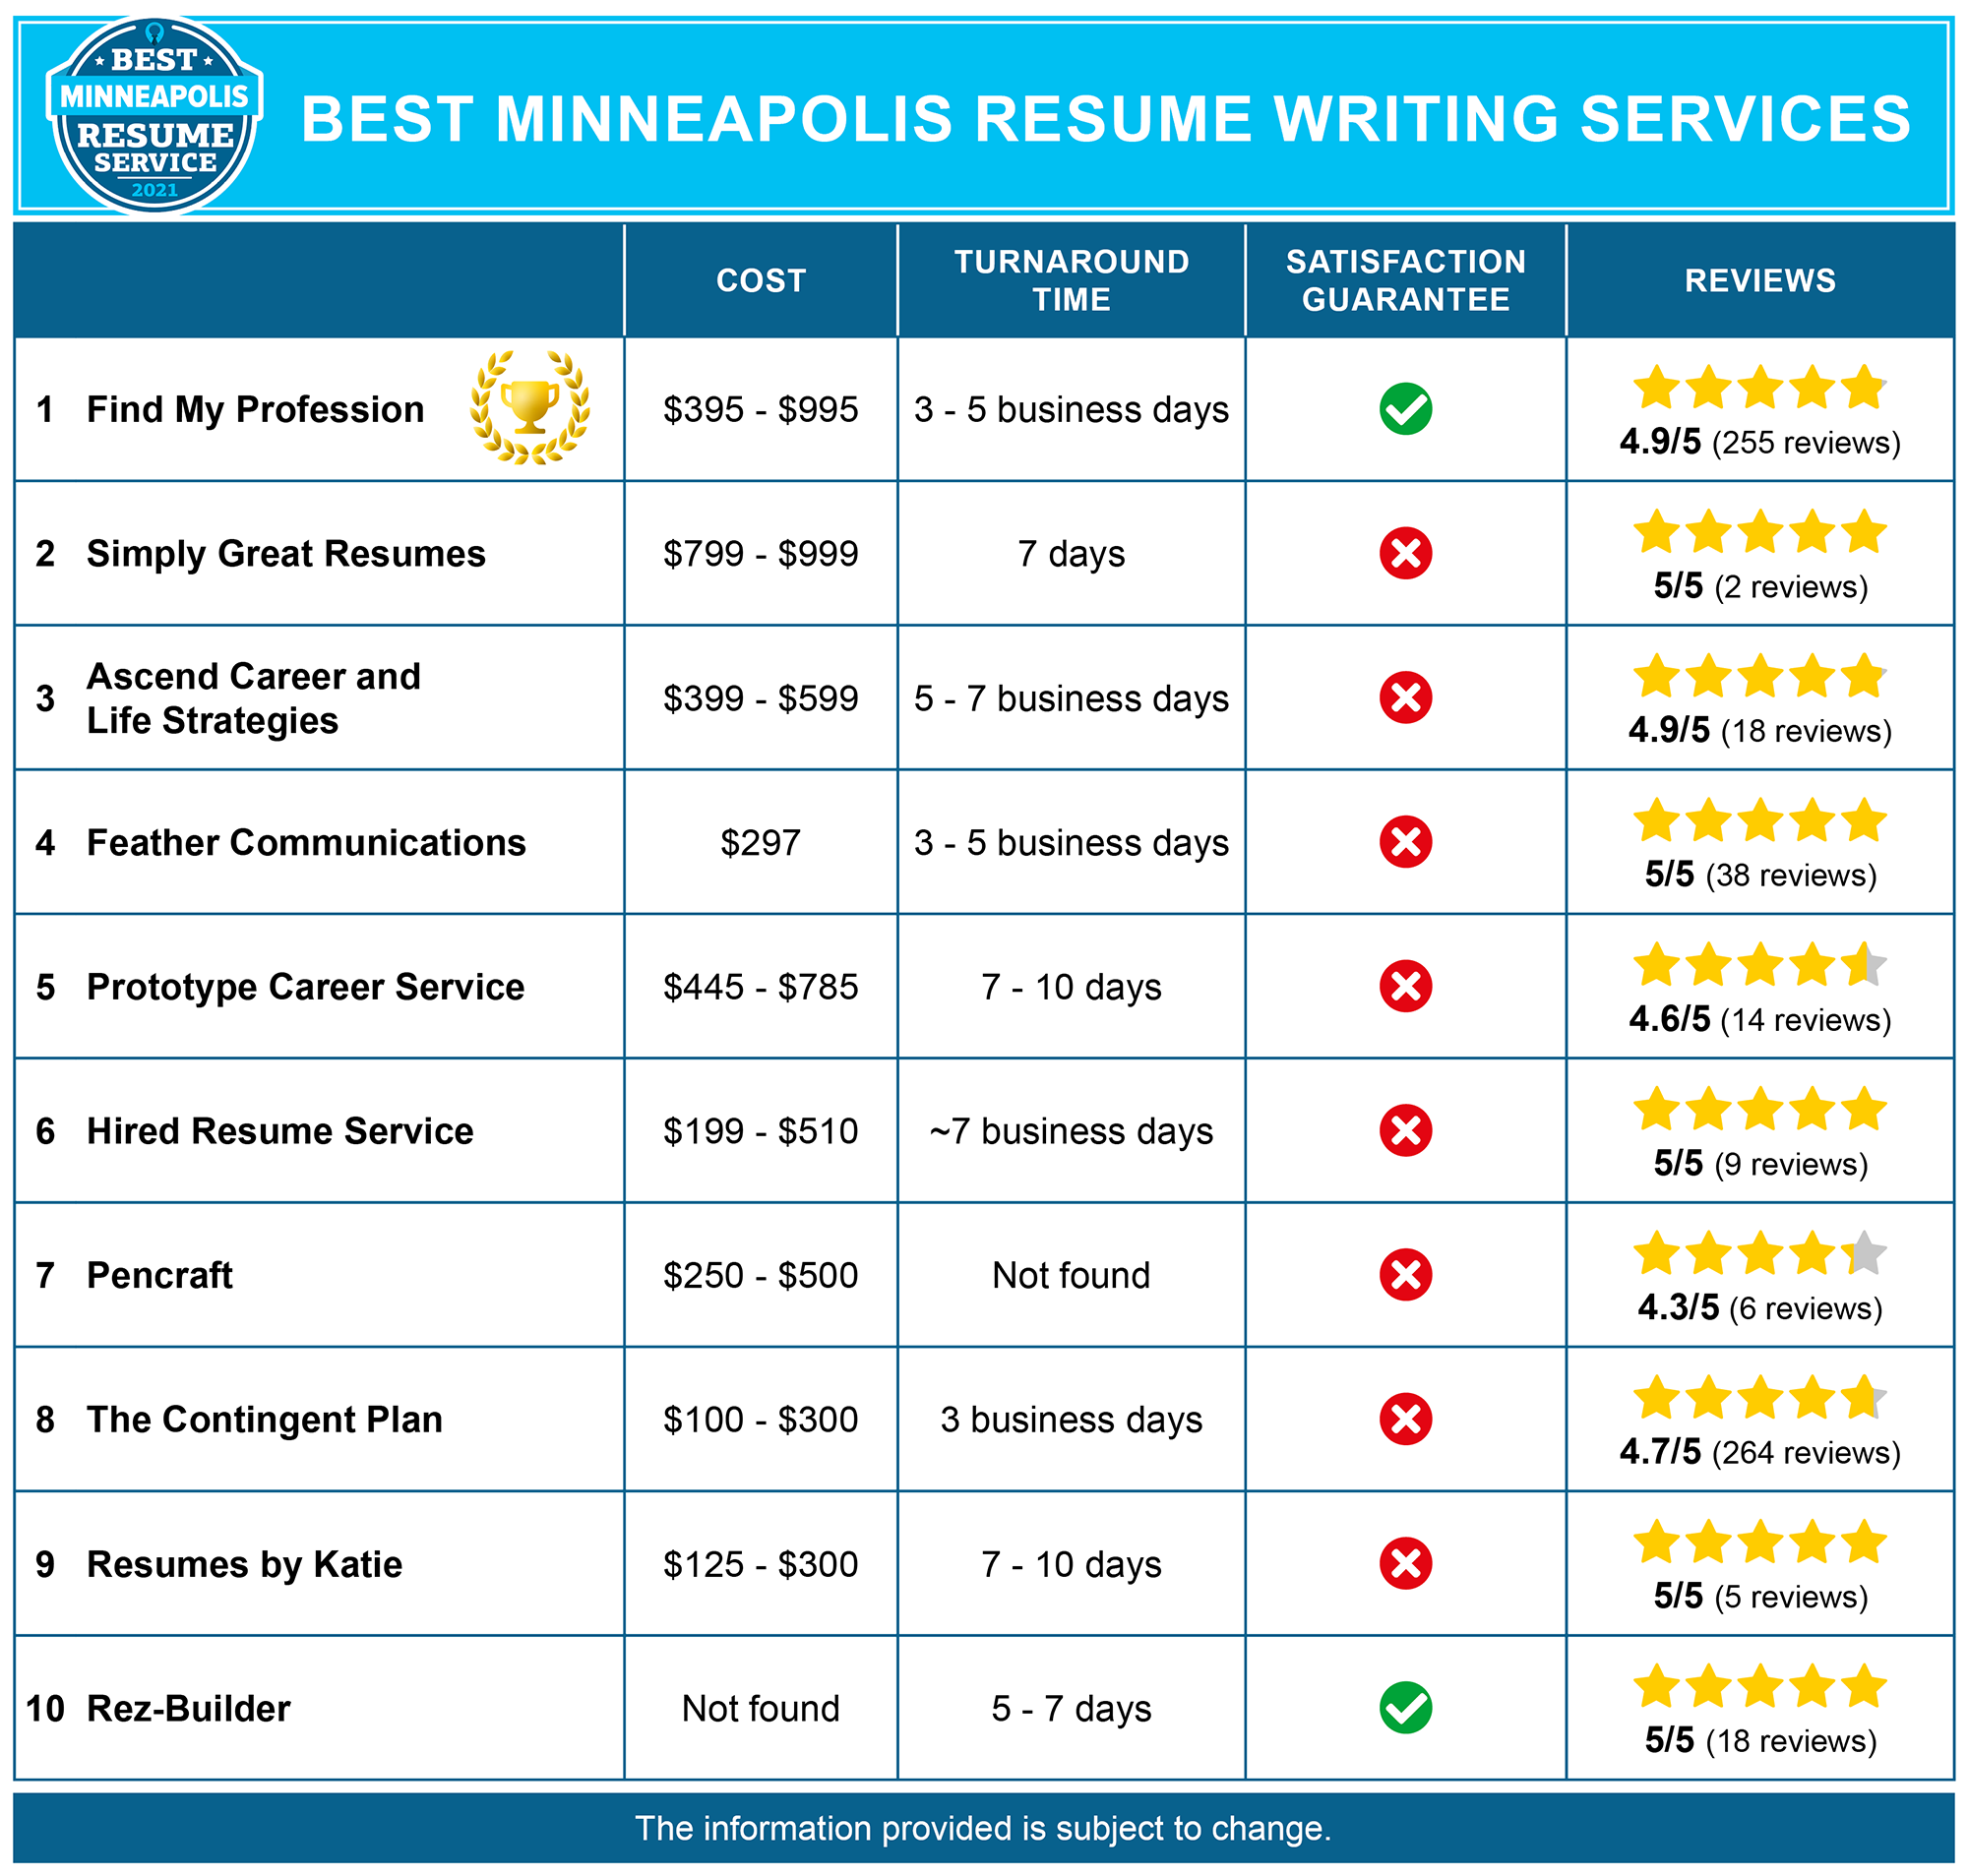 10 Best Resume Writing Services in Minneapolis, MN